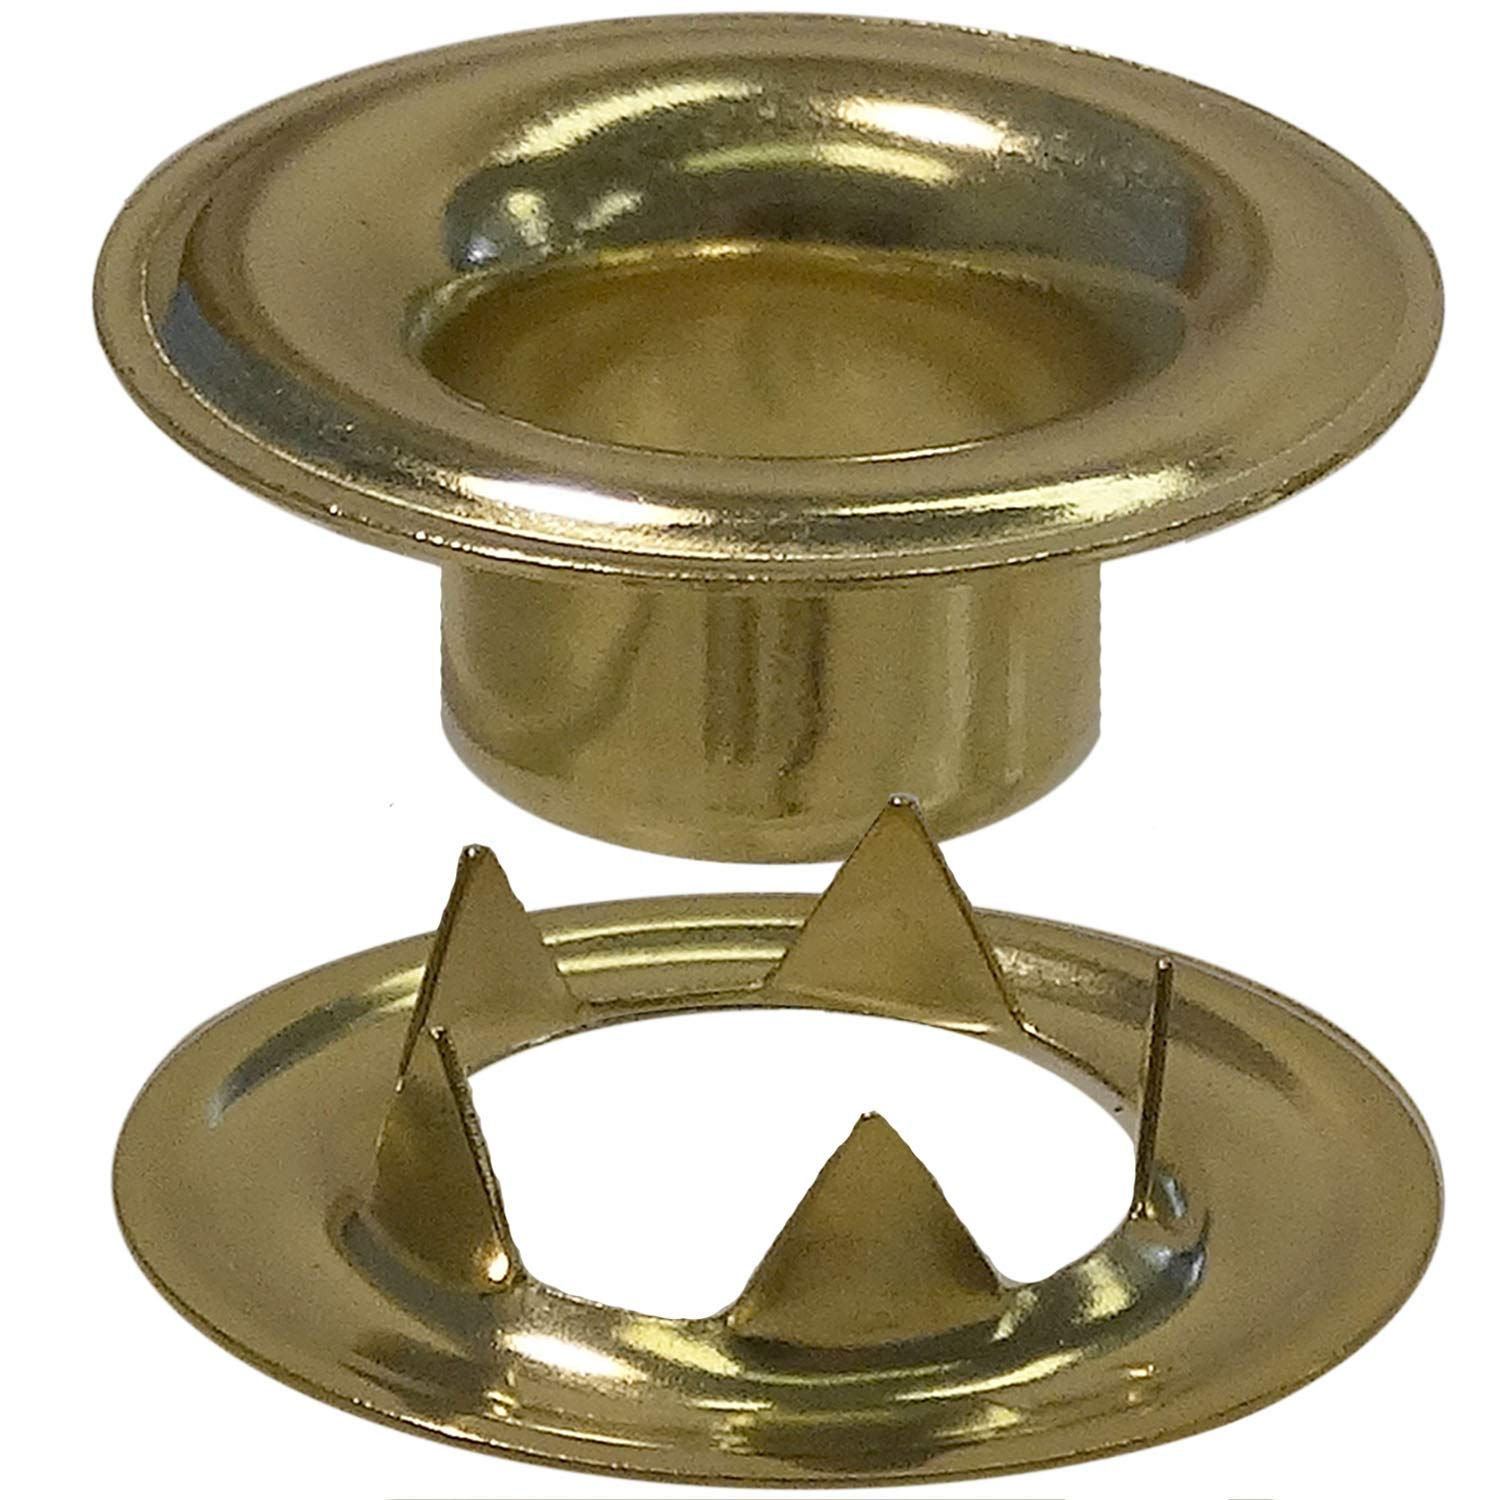 Stimpson Sheet Metal Grommet and Teeth Washer Brass Durable, Reliable, Heavy-Duty #1 Set (7,200 Pieces of Each) by Stimpson Co., Inc. (Image #1)